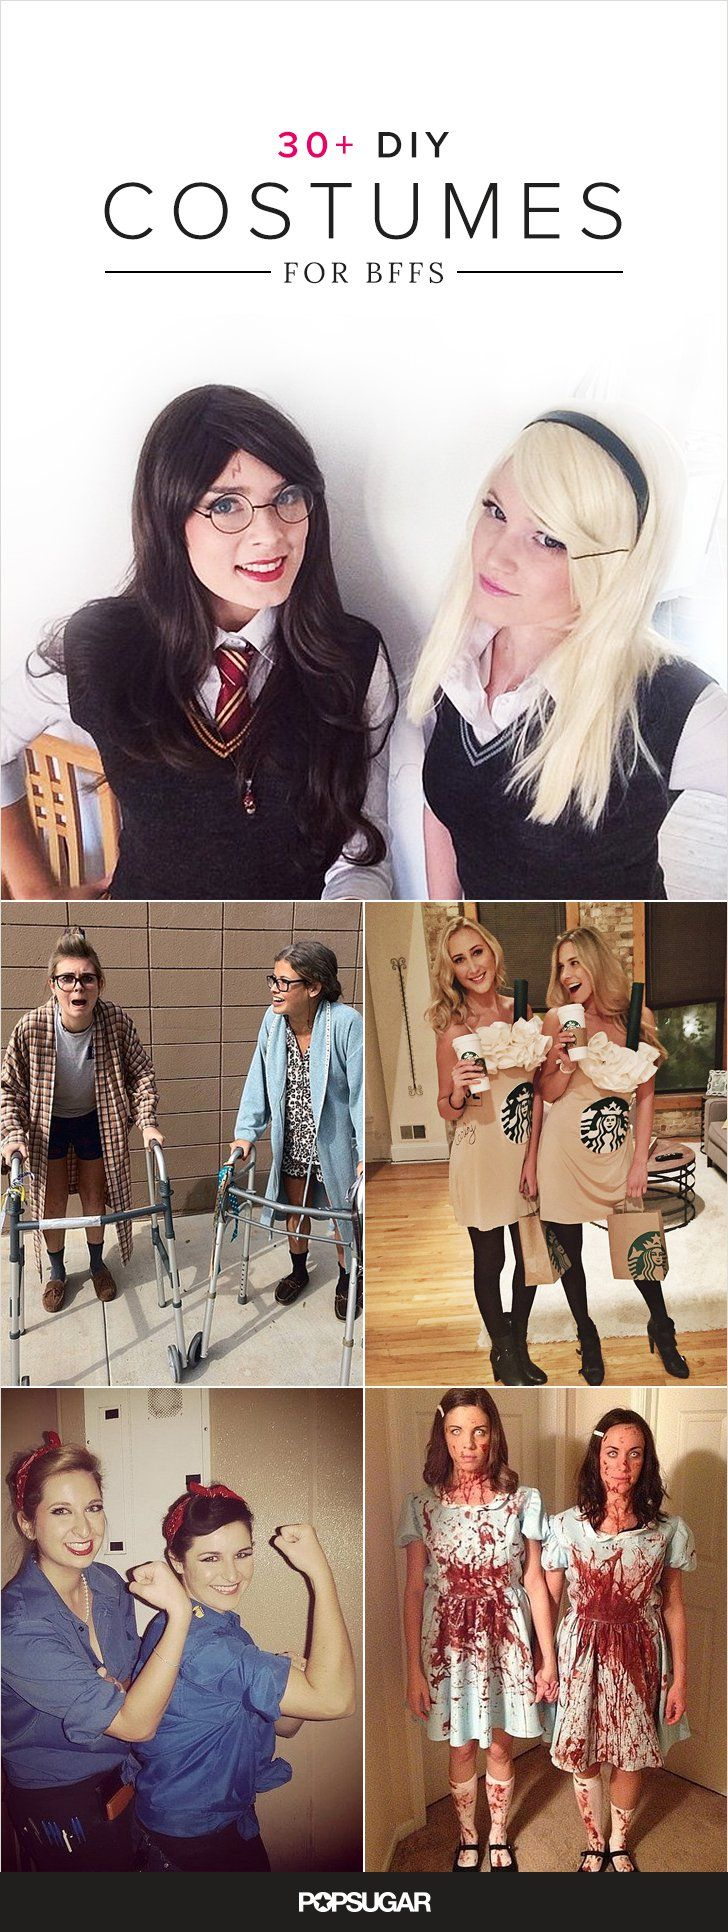 Best Best Friend Halloween Costumes Ideas On Pinterest Best - 20 of the funniest costumes twin kids can wear at halloween